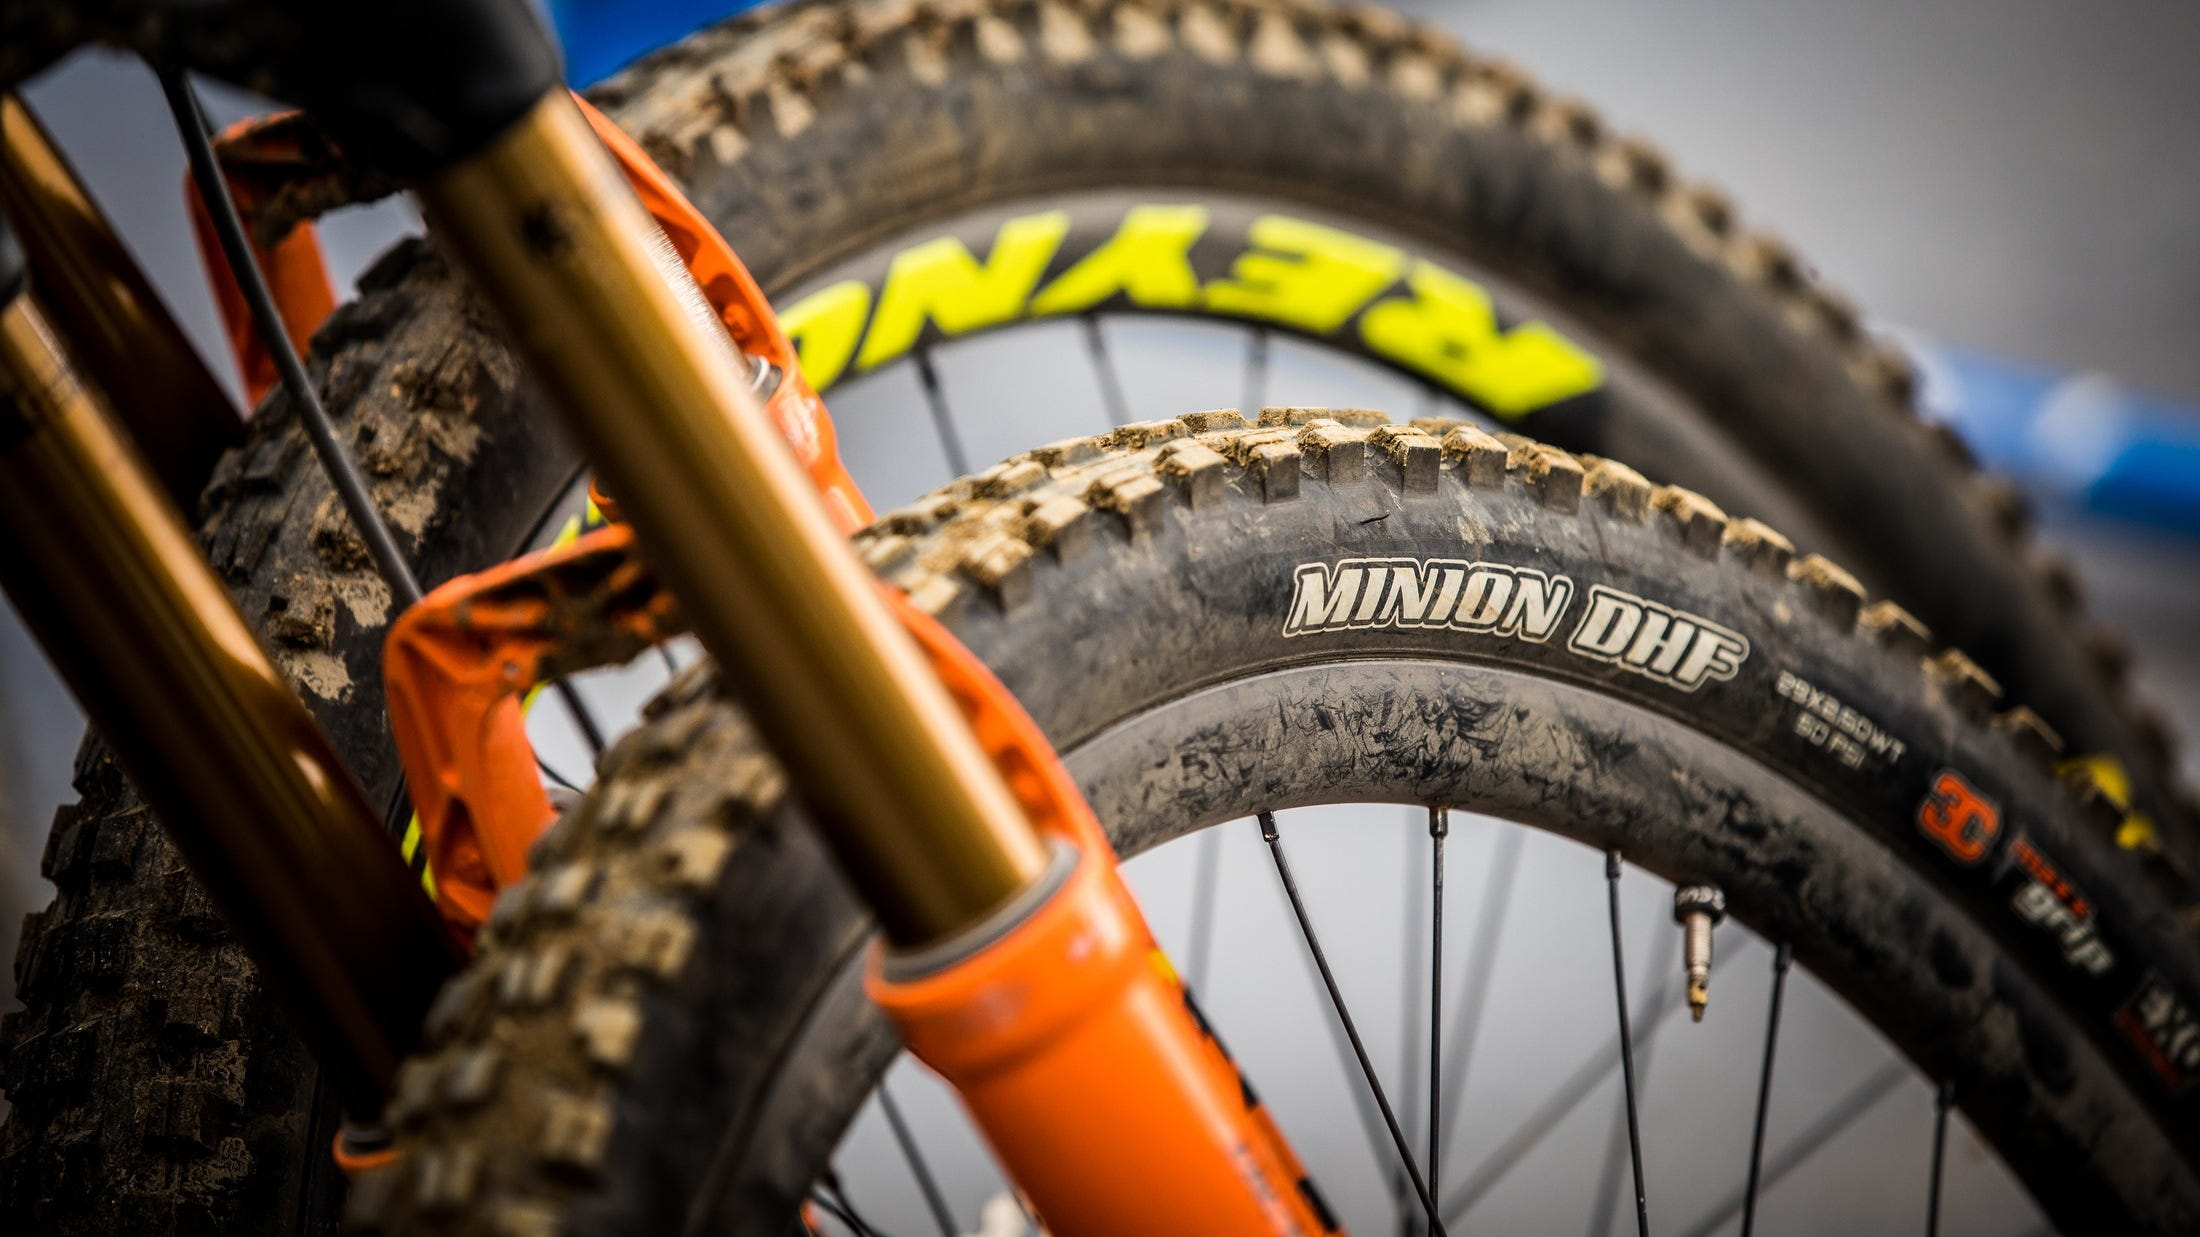 The Maxxis Minion hits 20 years